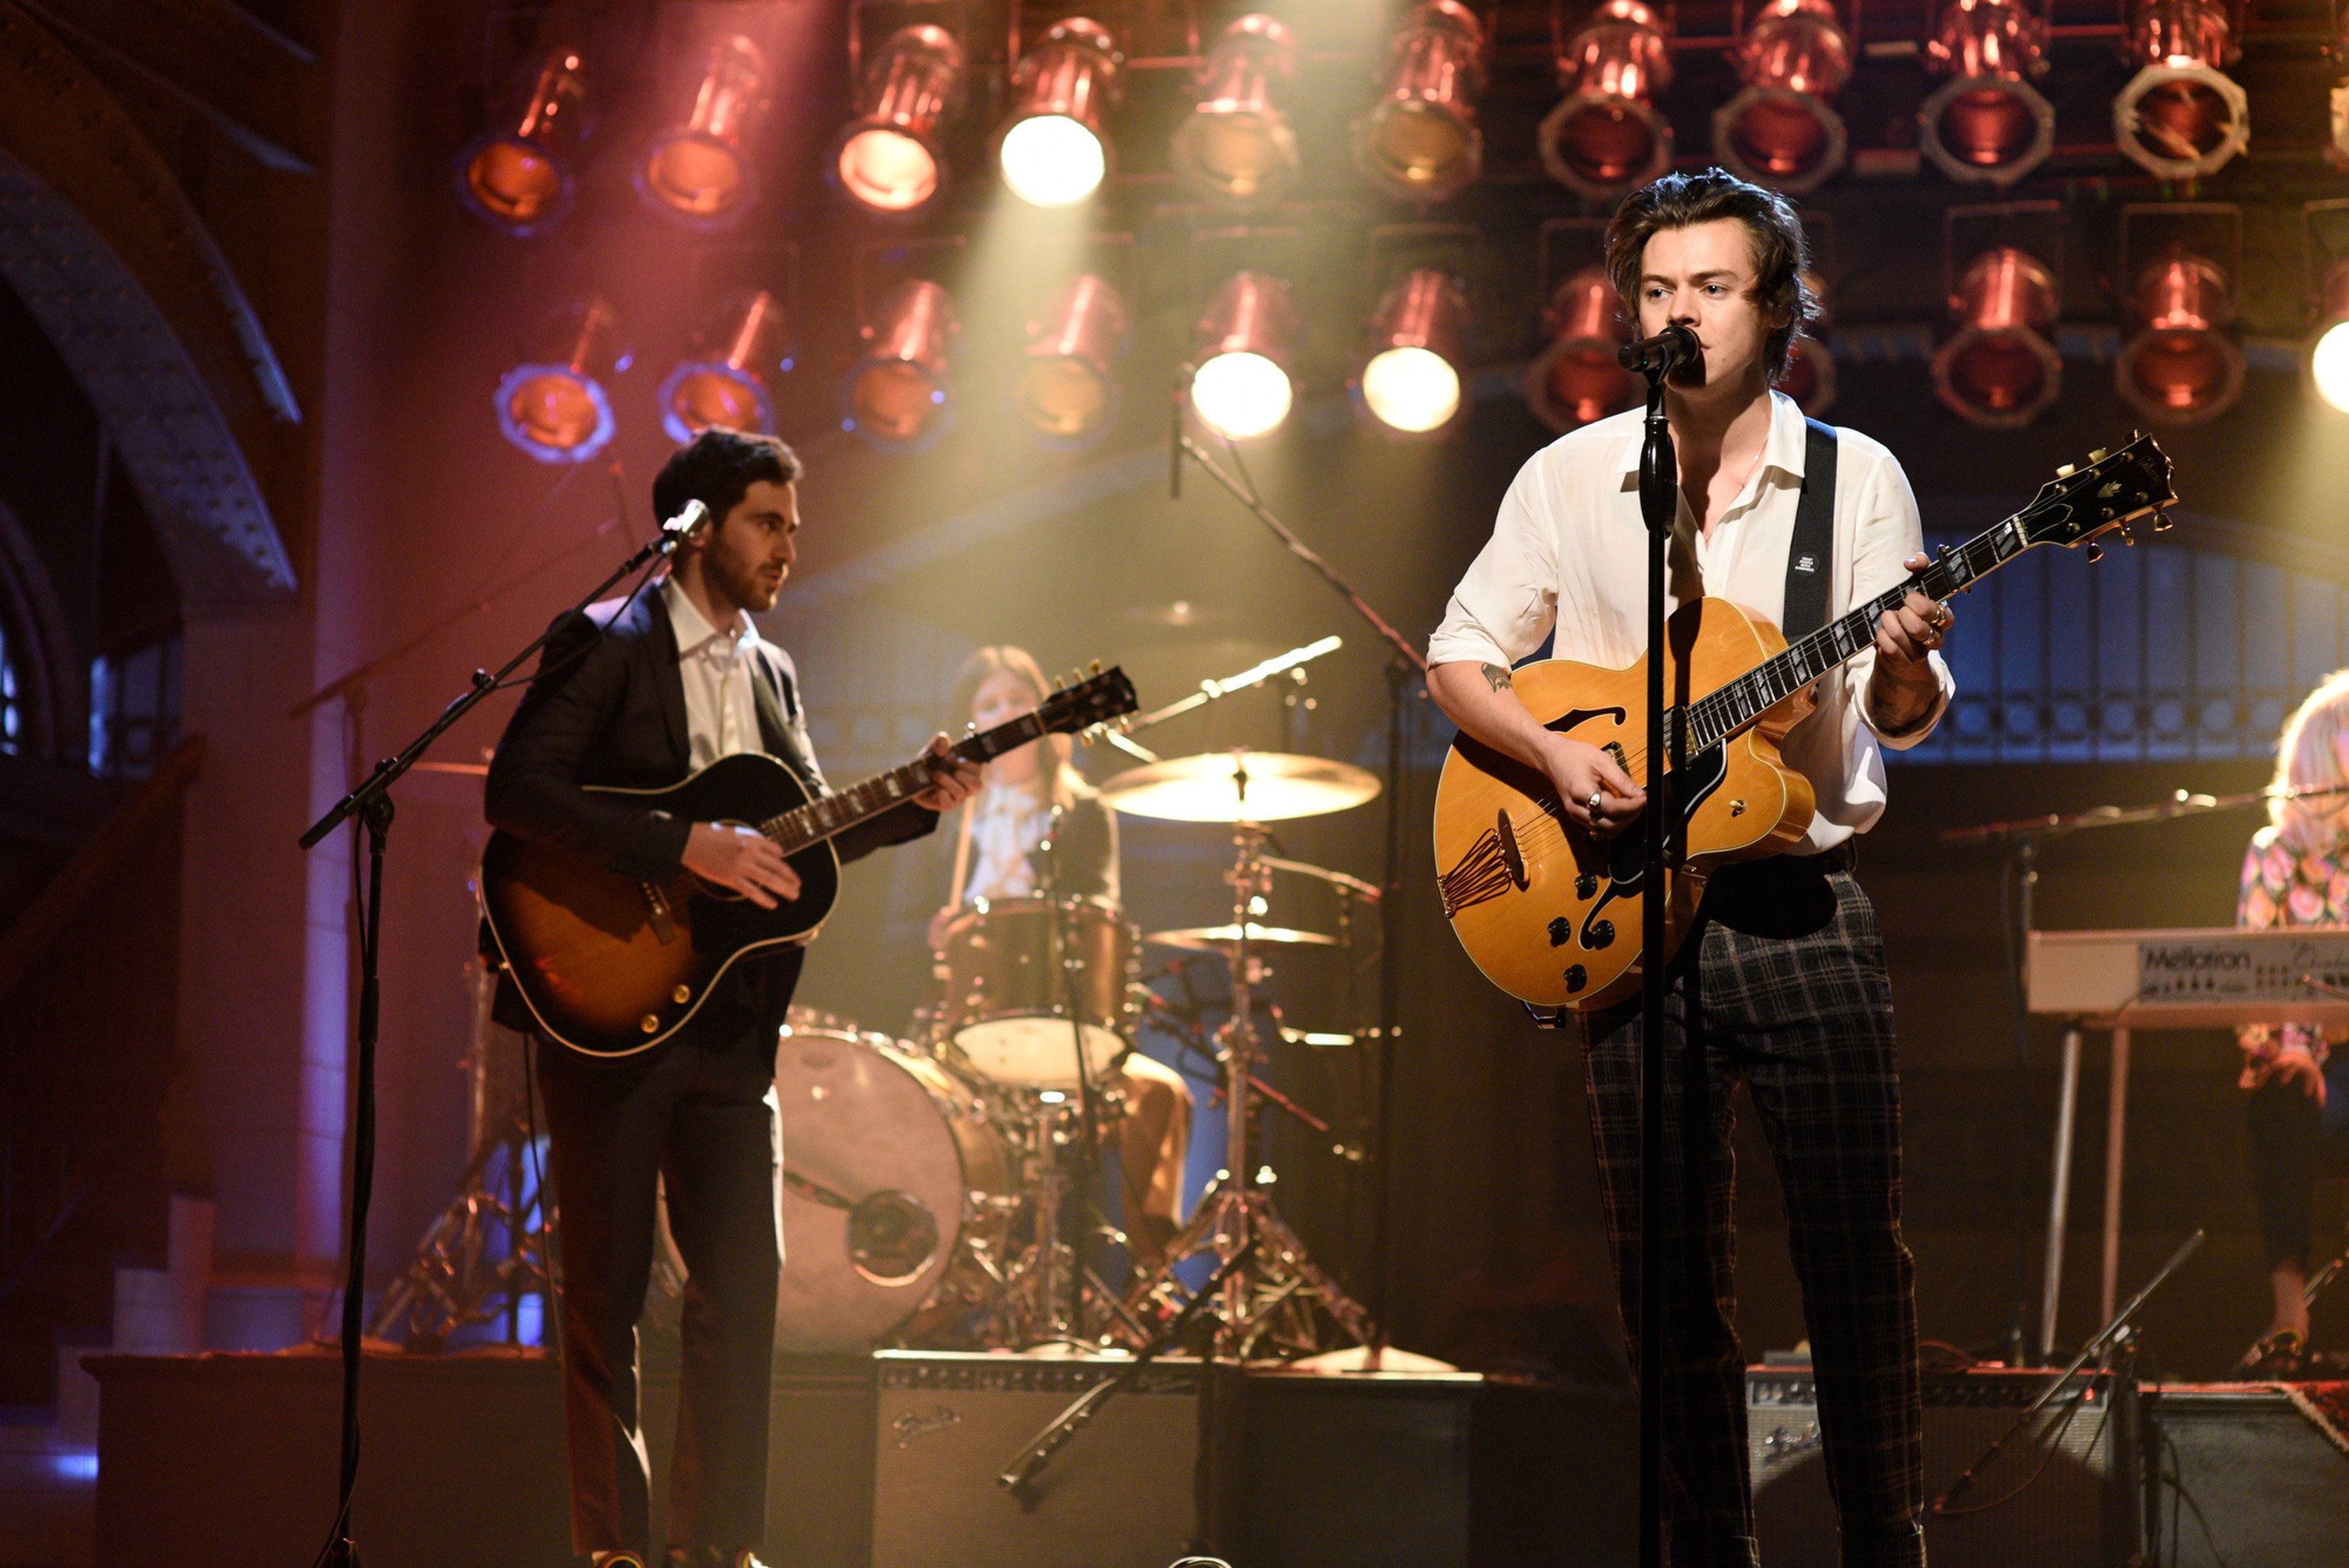 It Turns Out Harry Styles' 'Sign Of The Times' Has A Rather Surprising Backstory